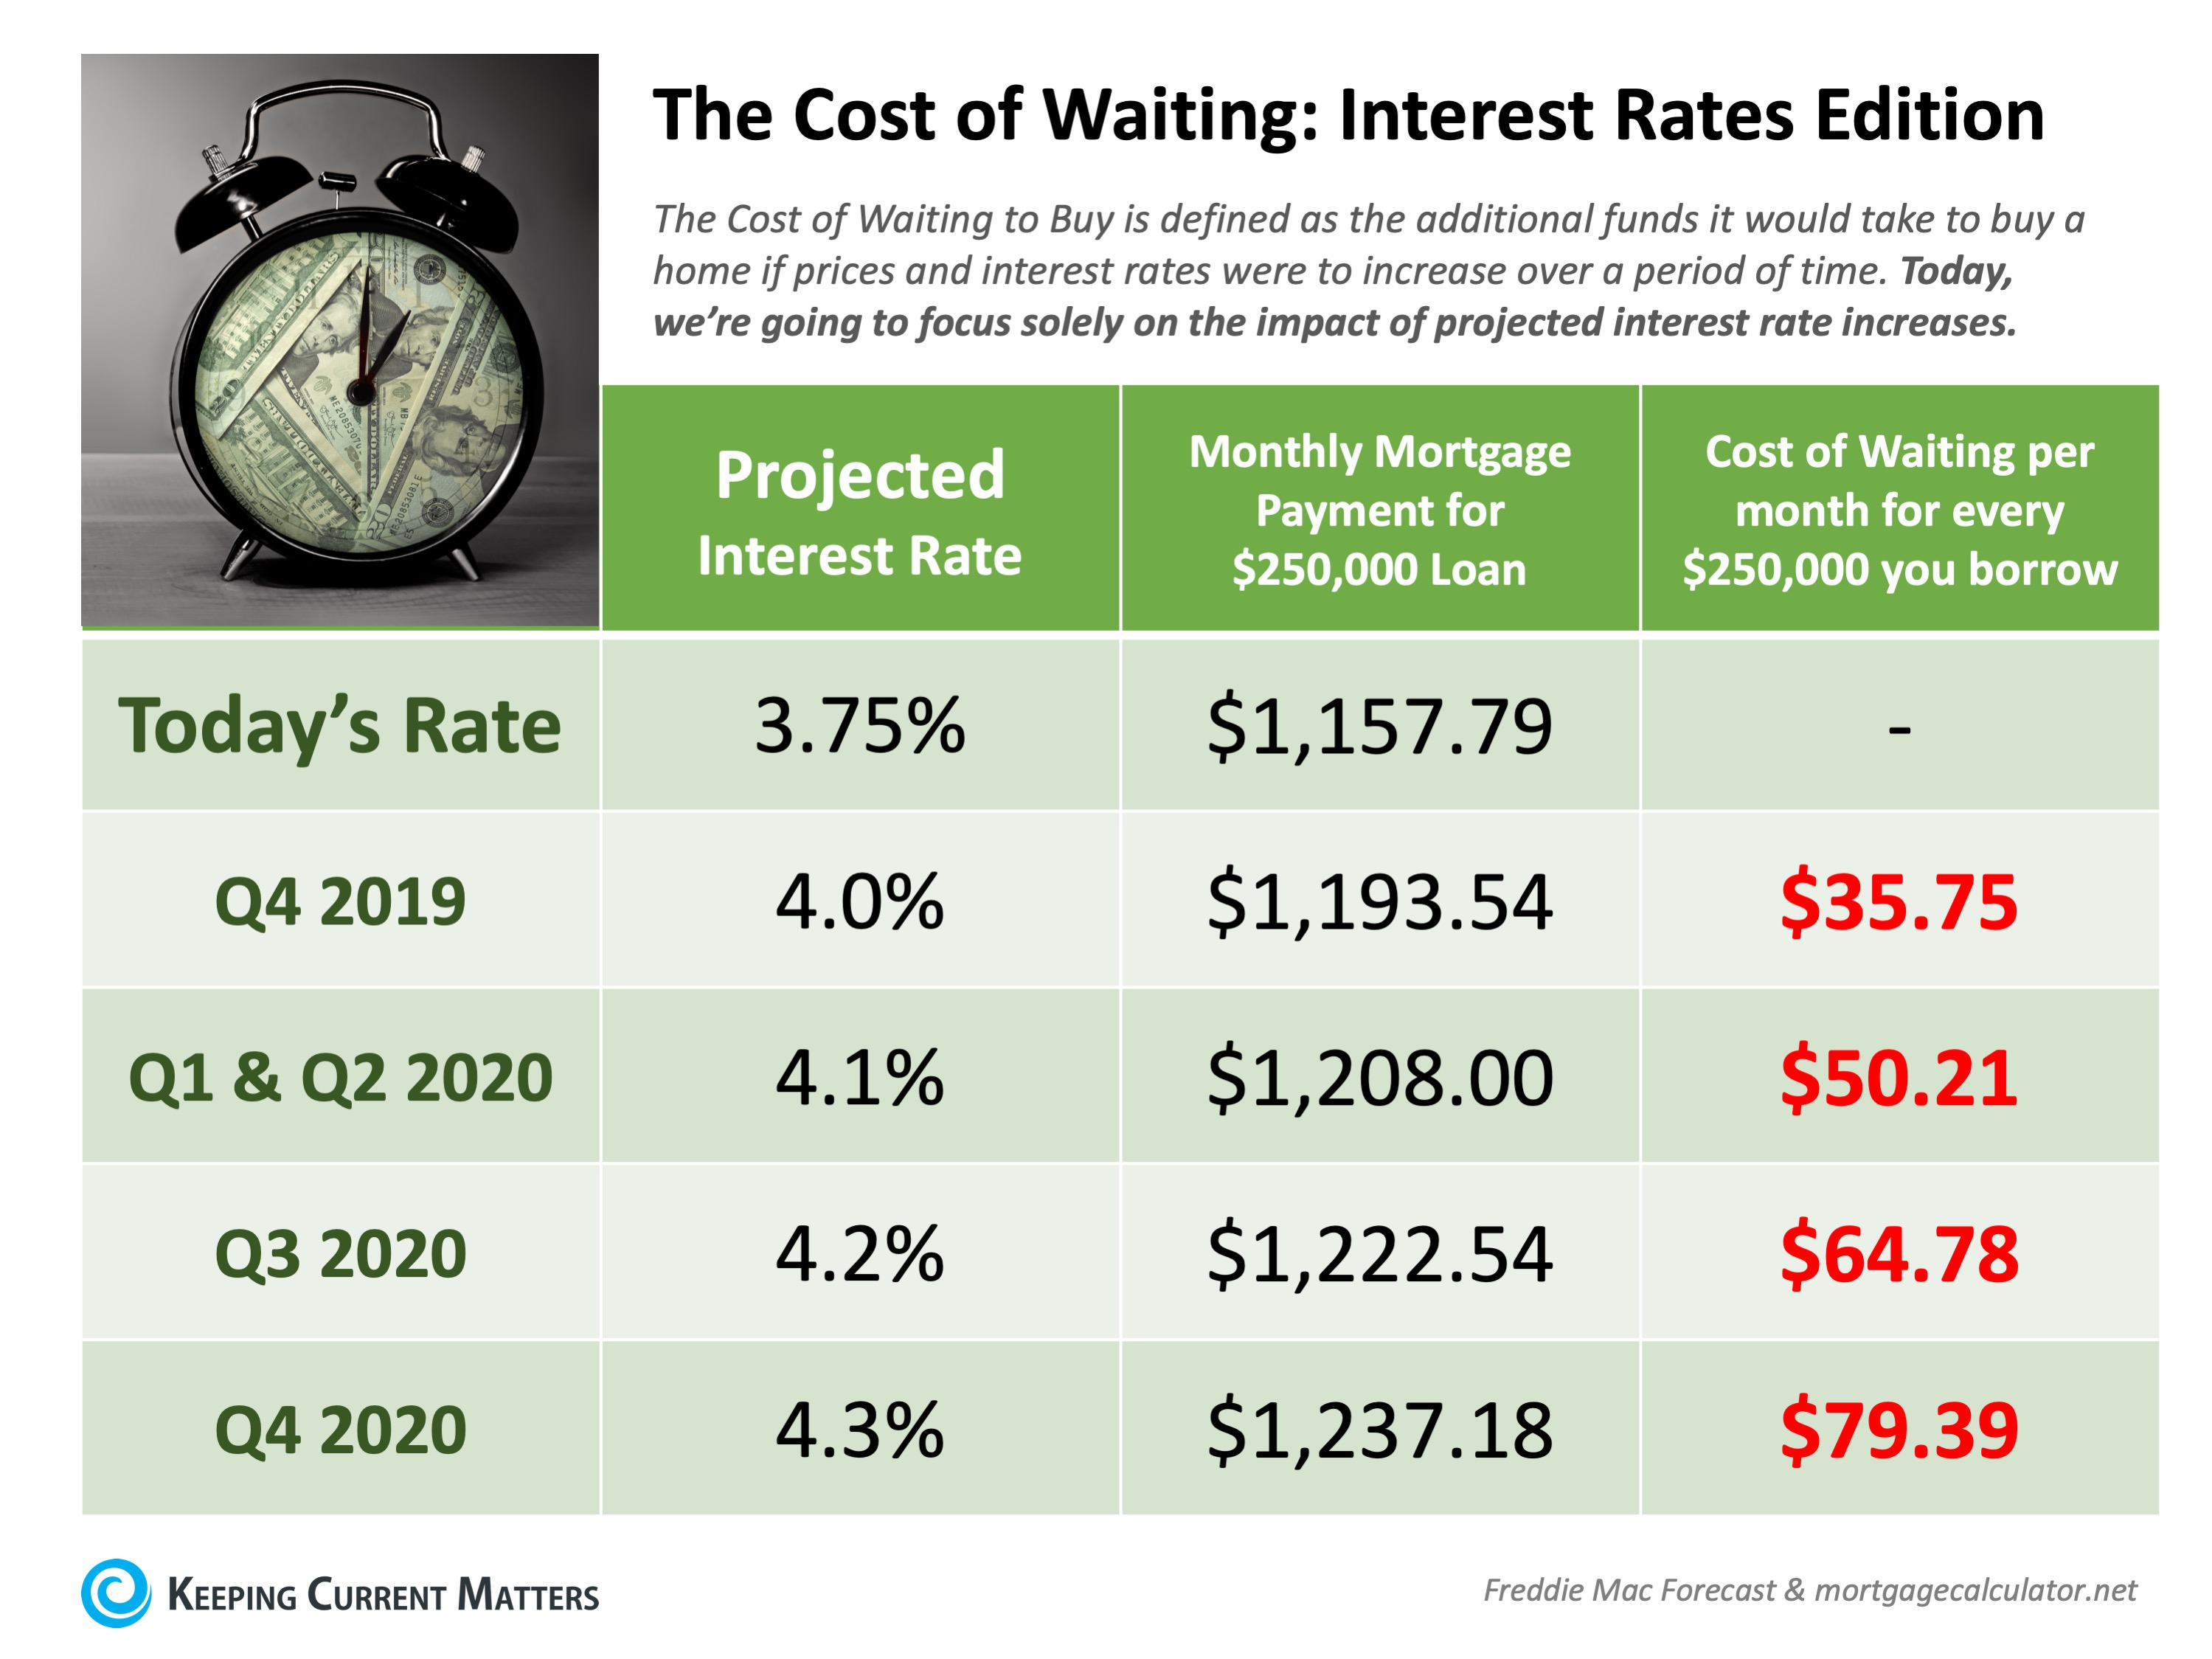 interest rate increase in payment